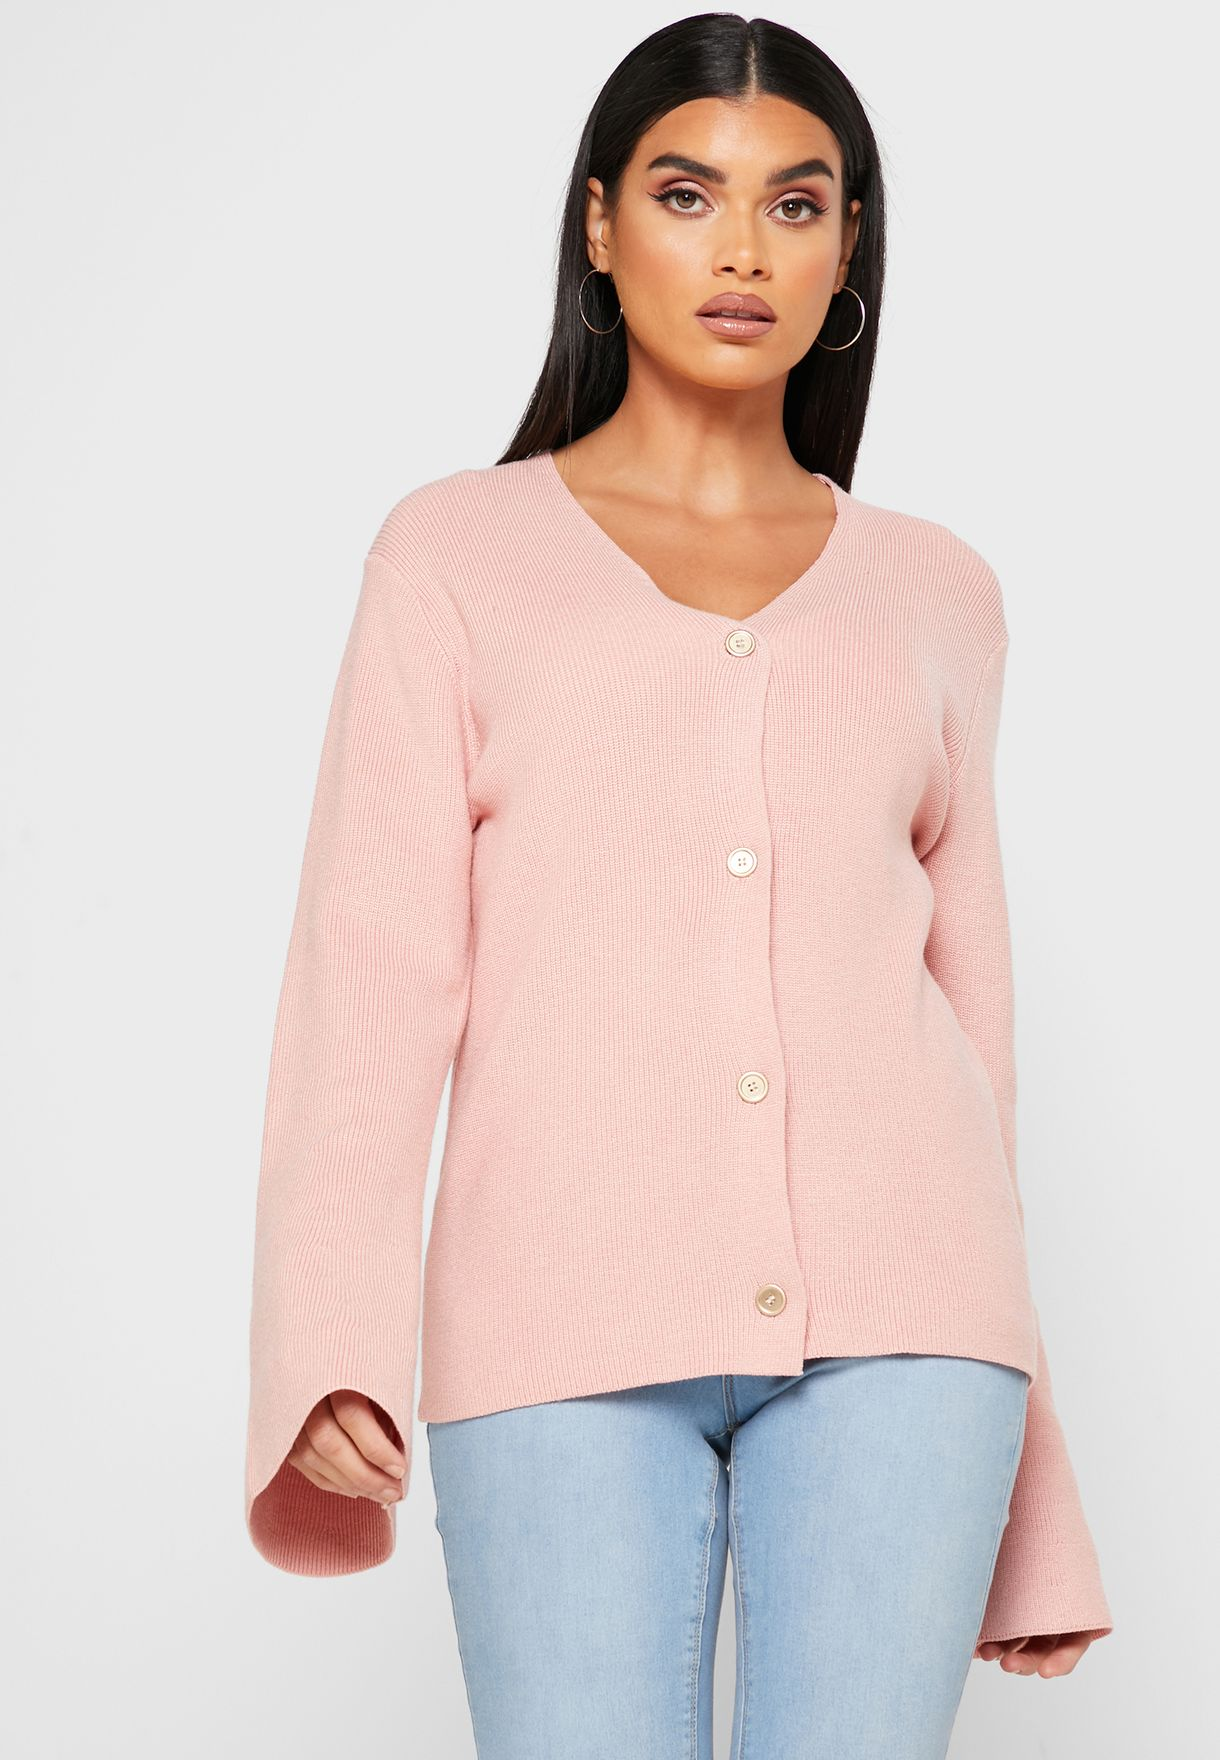 Flare Sleeve Button Down Cardigan